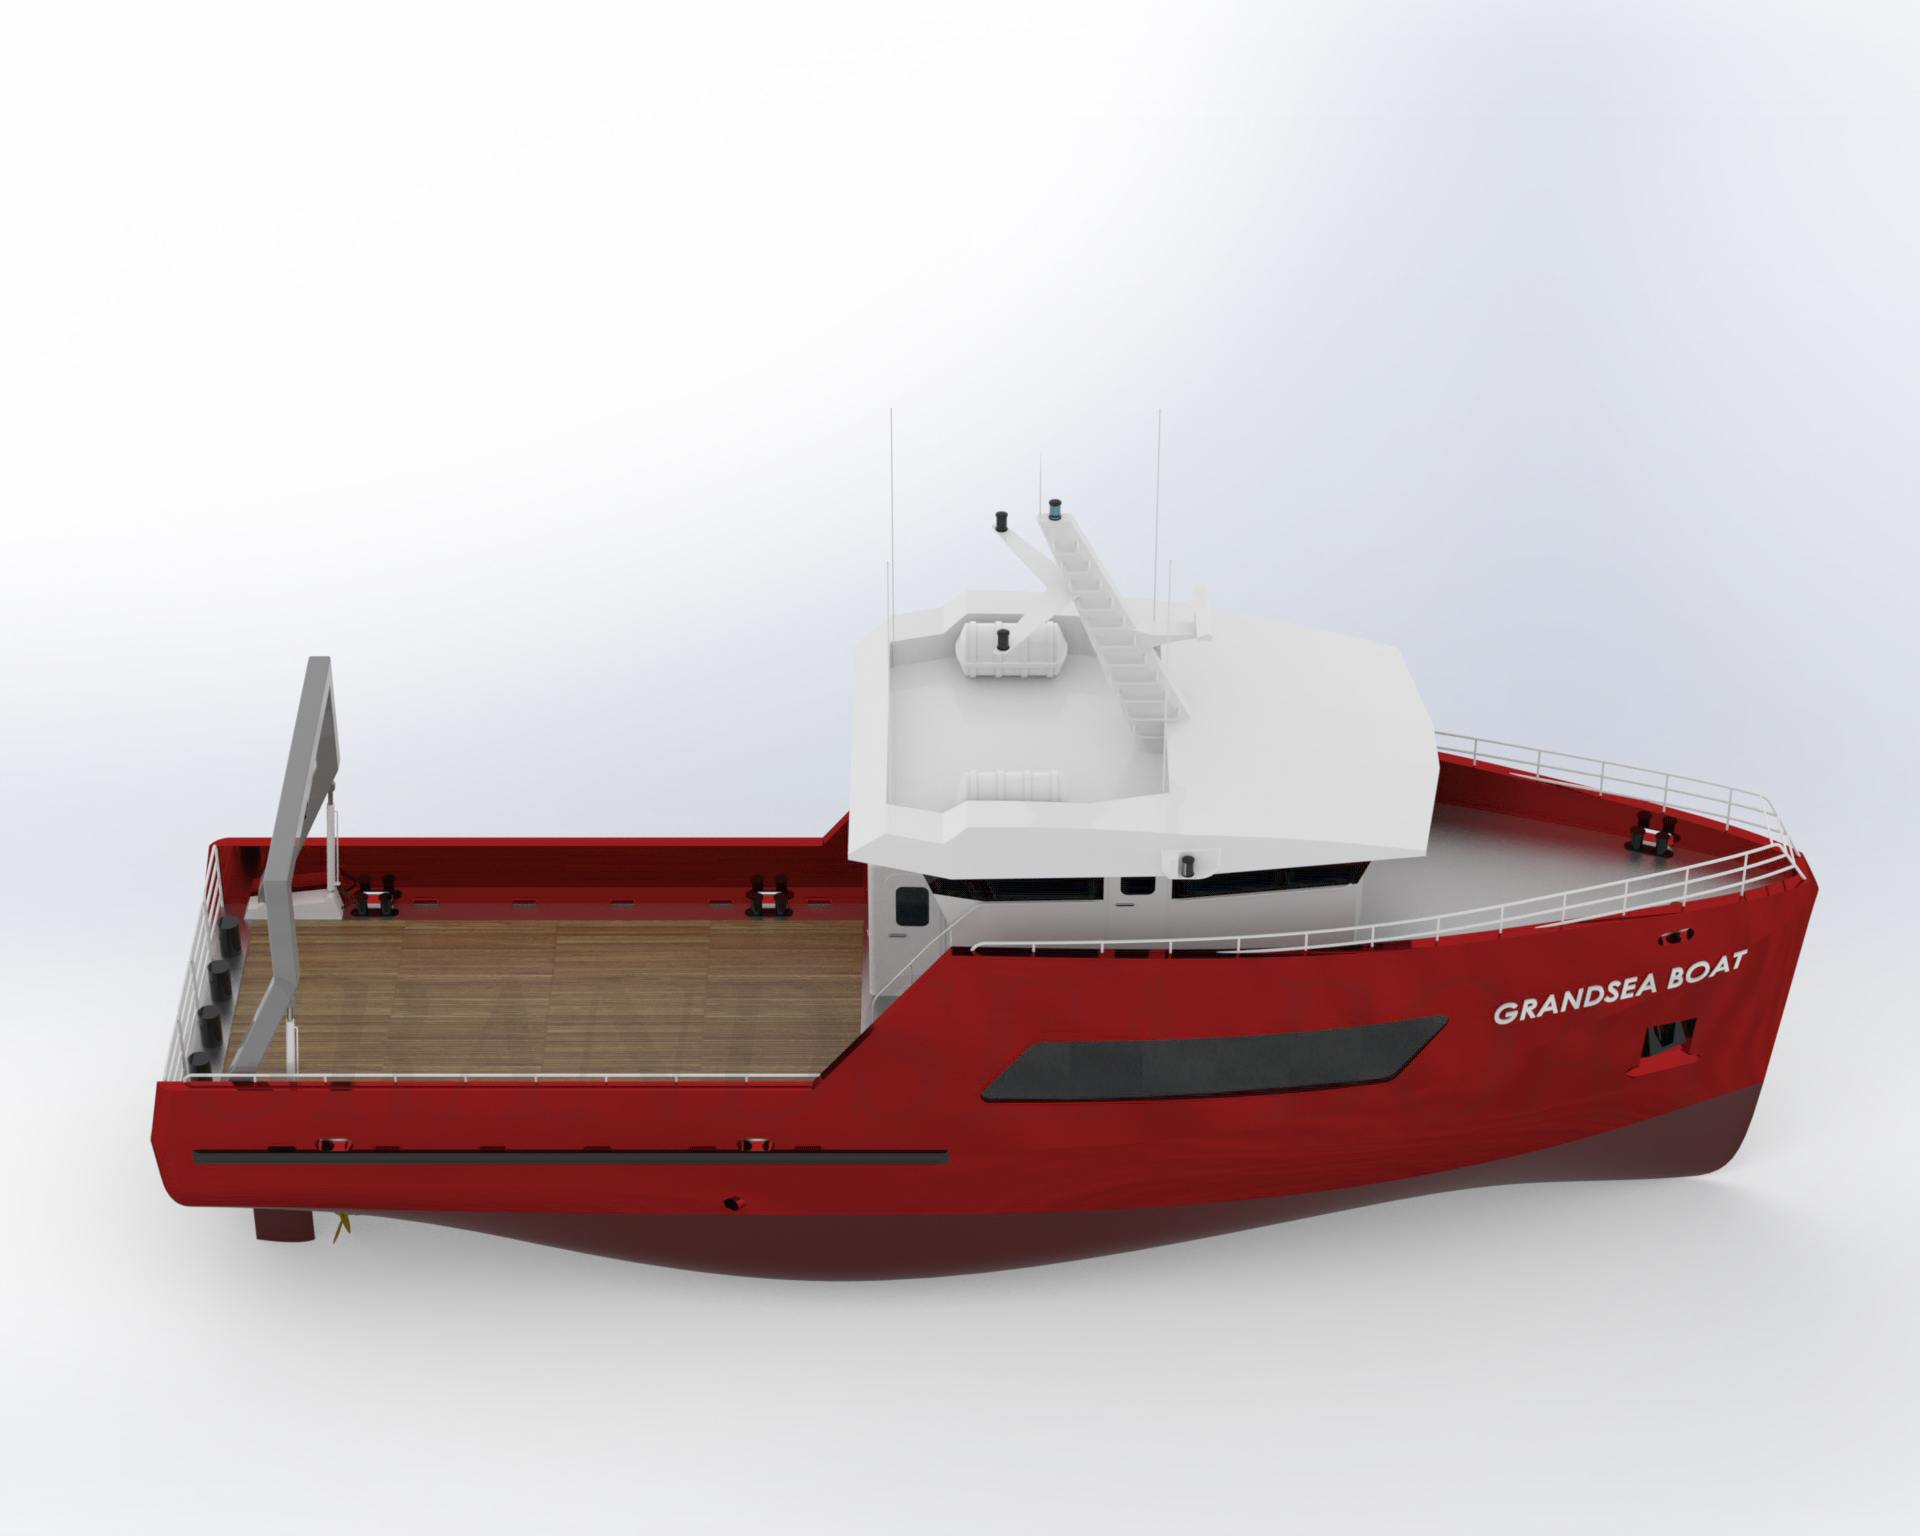 22m Fast Platform Supply Vessel/multi Purpose Utility Supply Vessel/supply And Crew Boat PSV for Sale